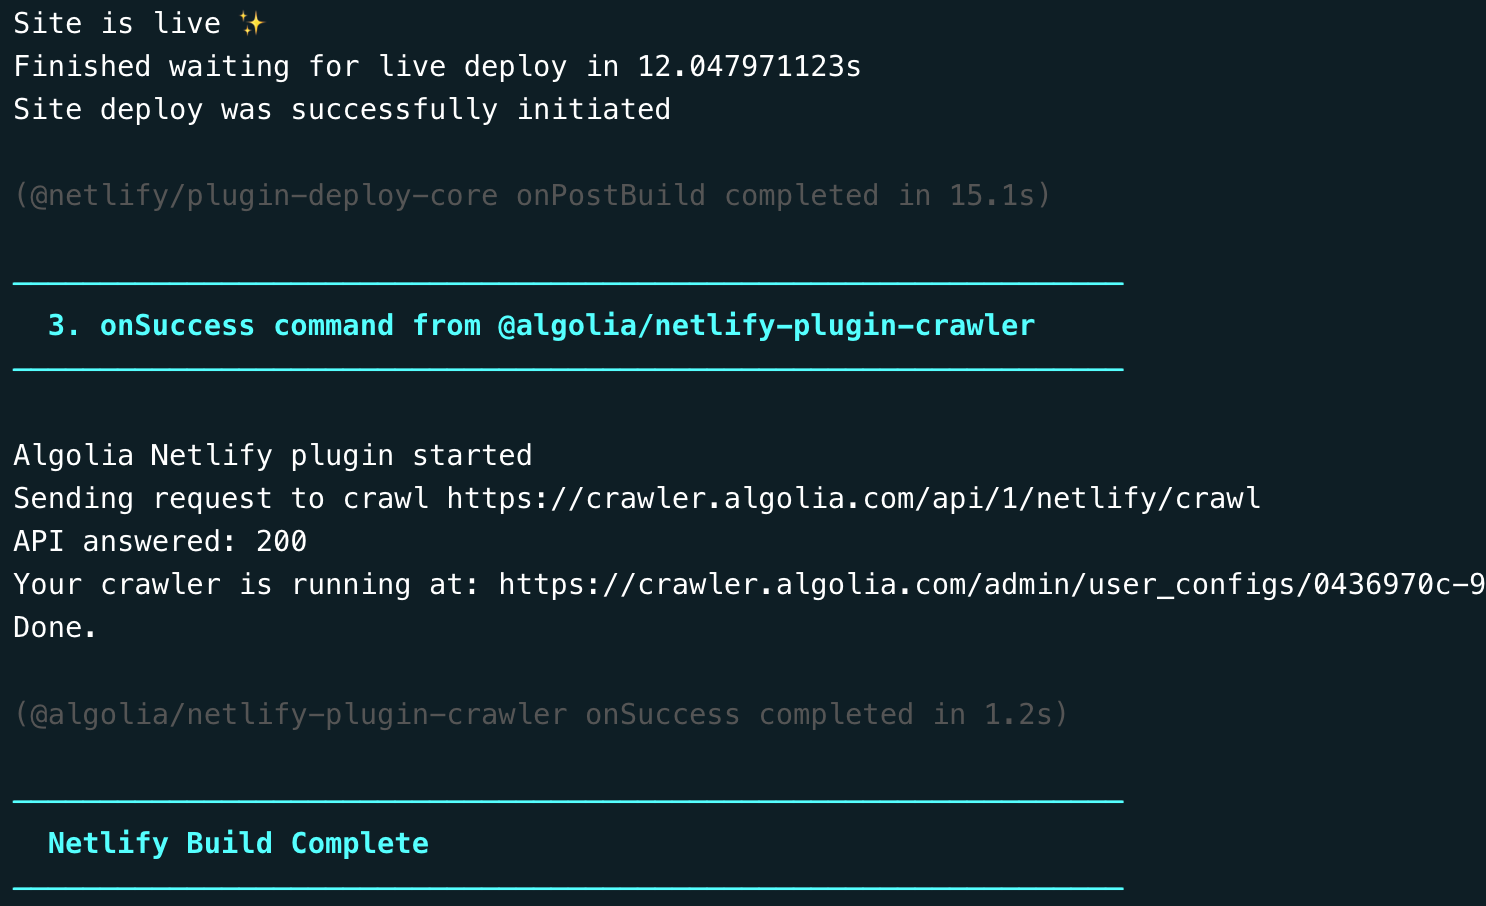 Screenshot of Netlify build logs showing site is live, focused on the logs generated by the Algolia plugin